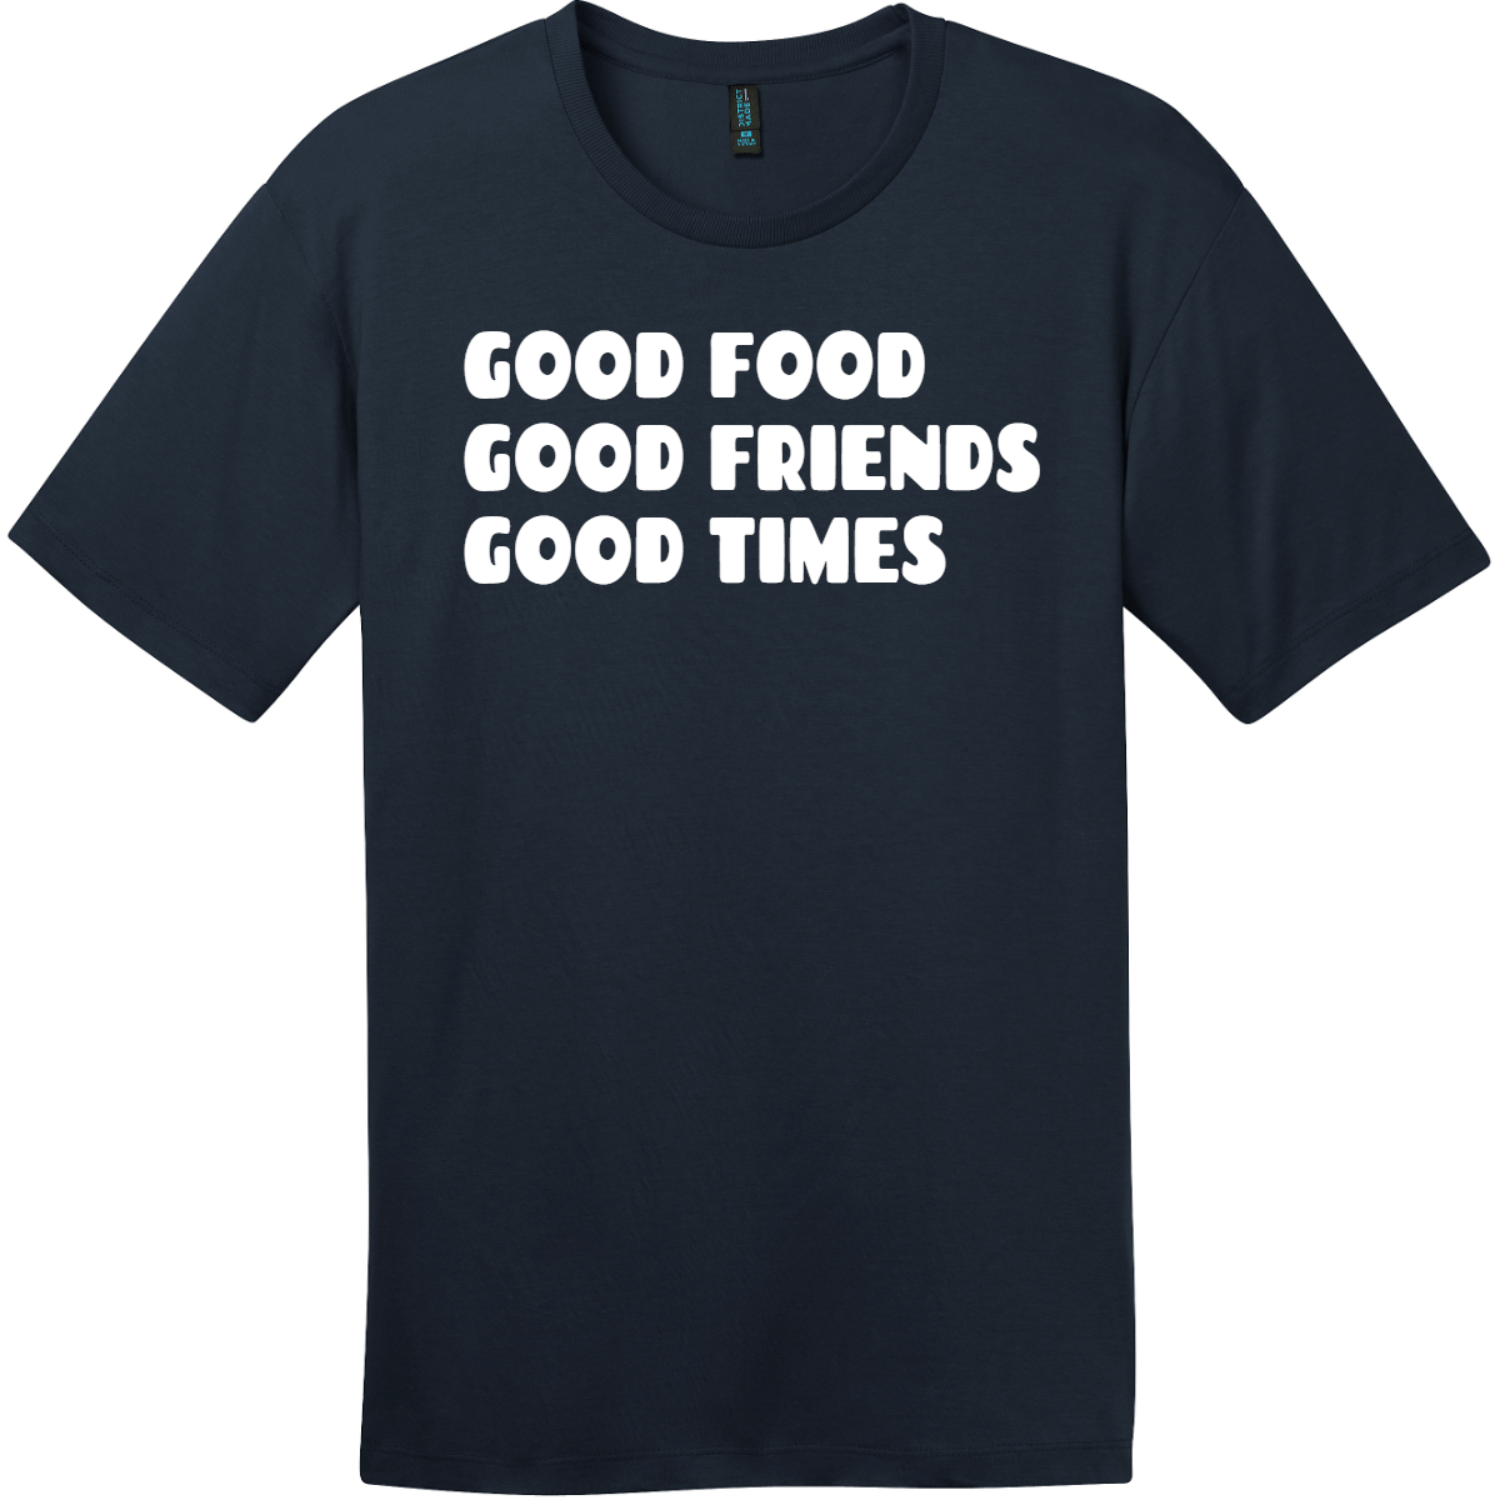 Good Food Good Friends Good Times T-Shirt New Navy District Perfect Weight Tee DT104